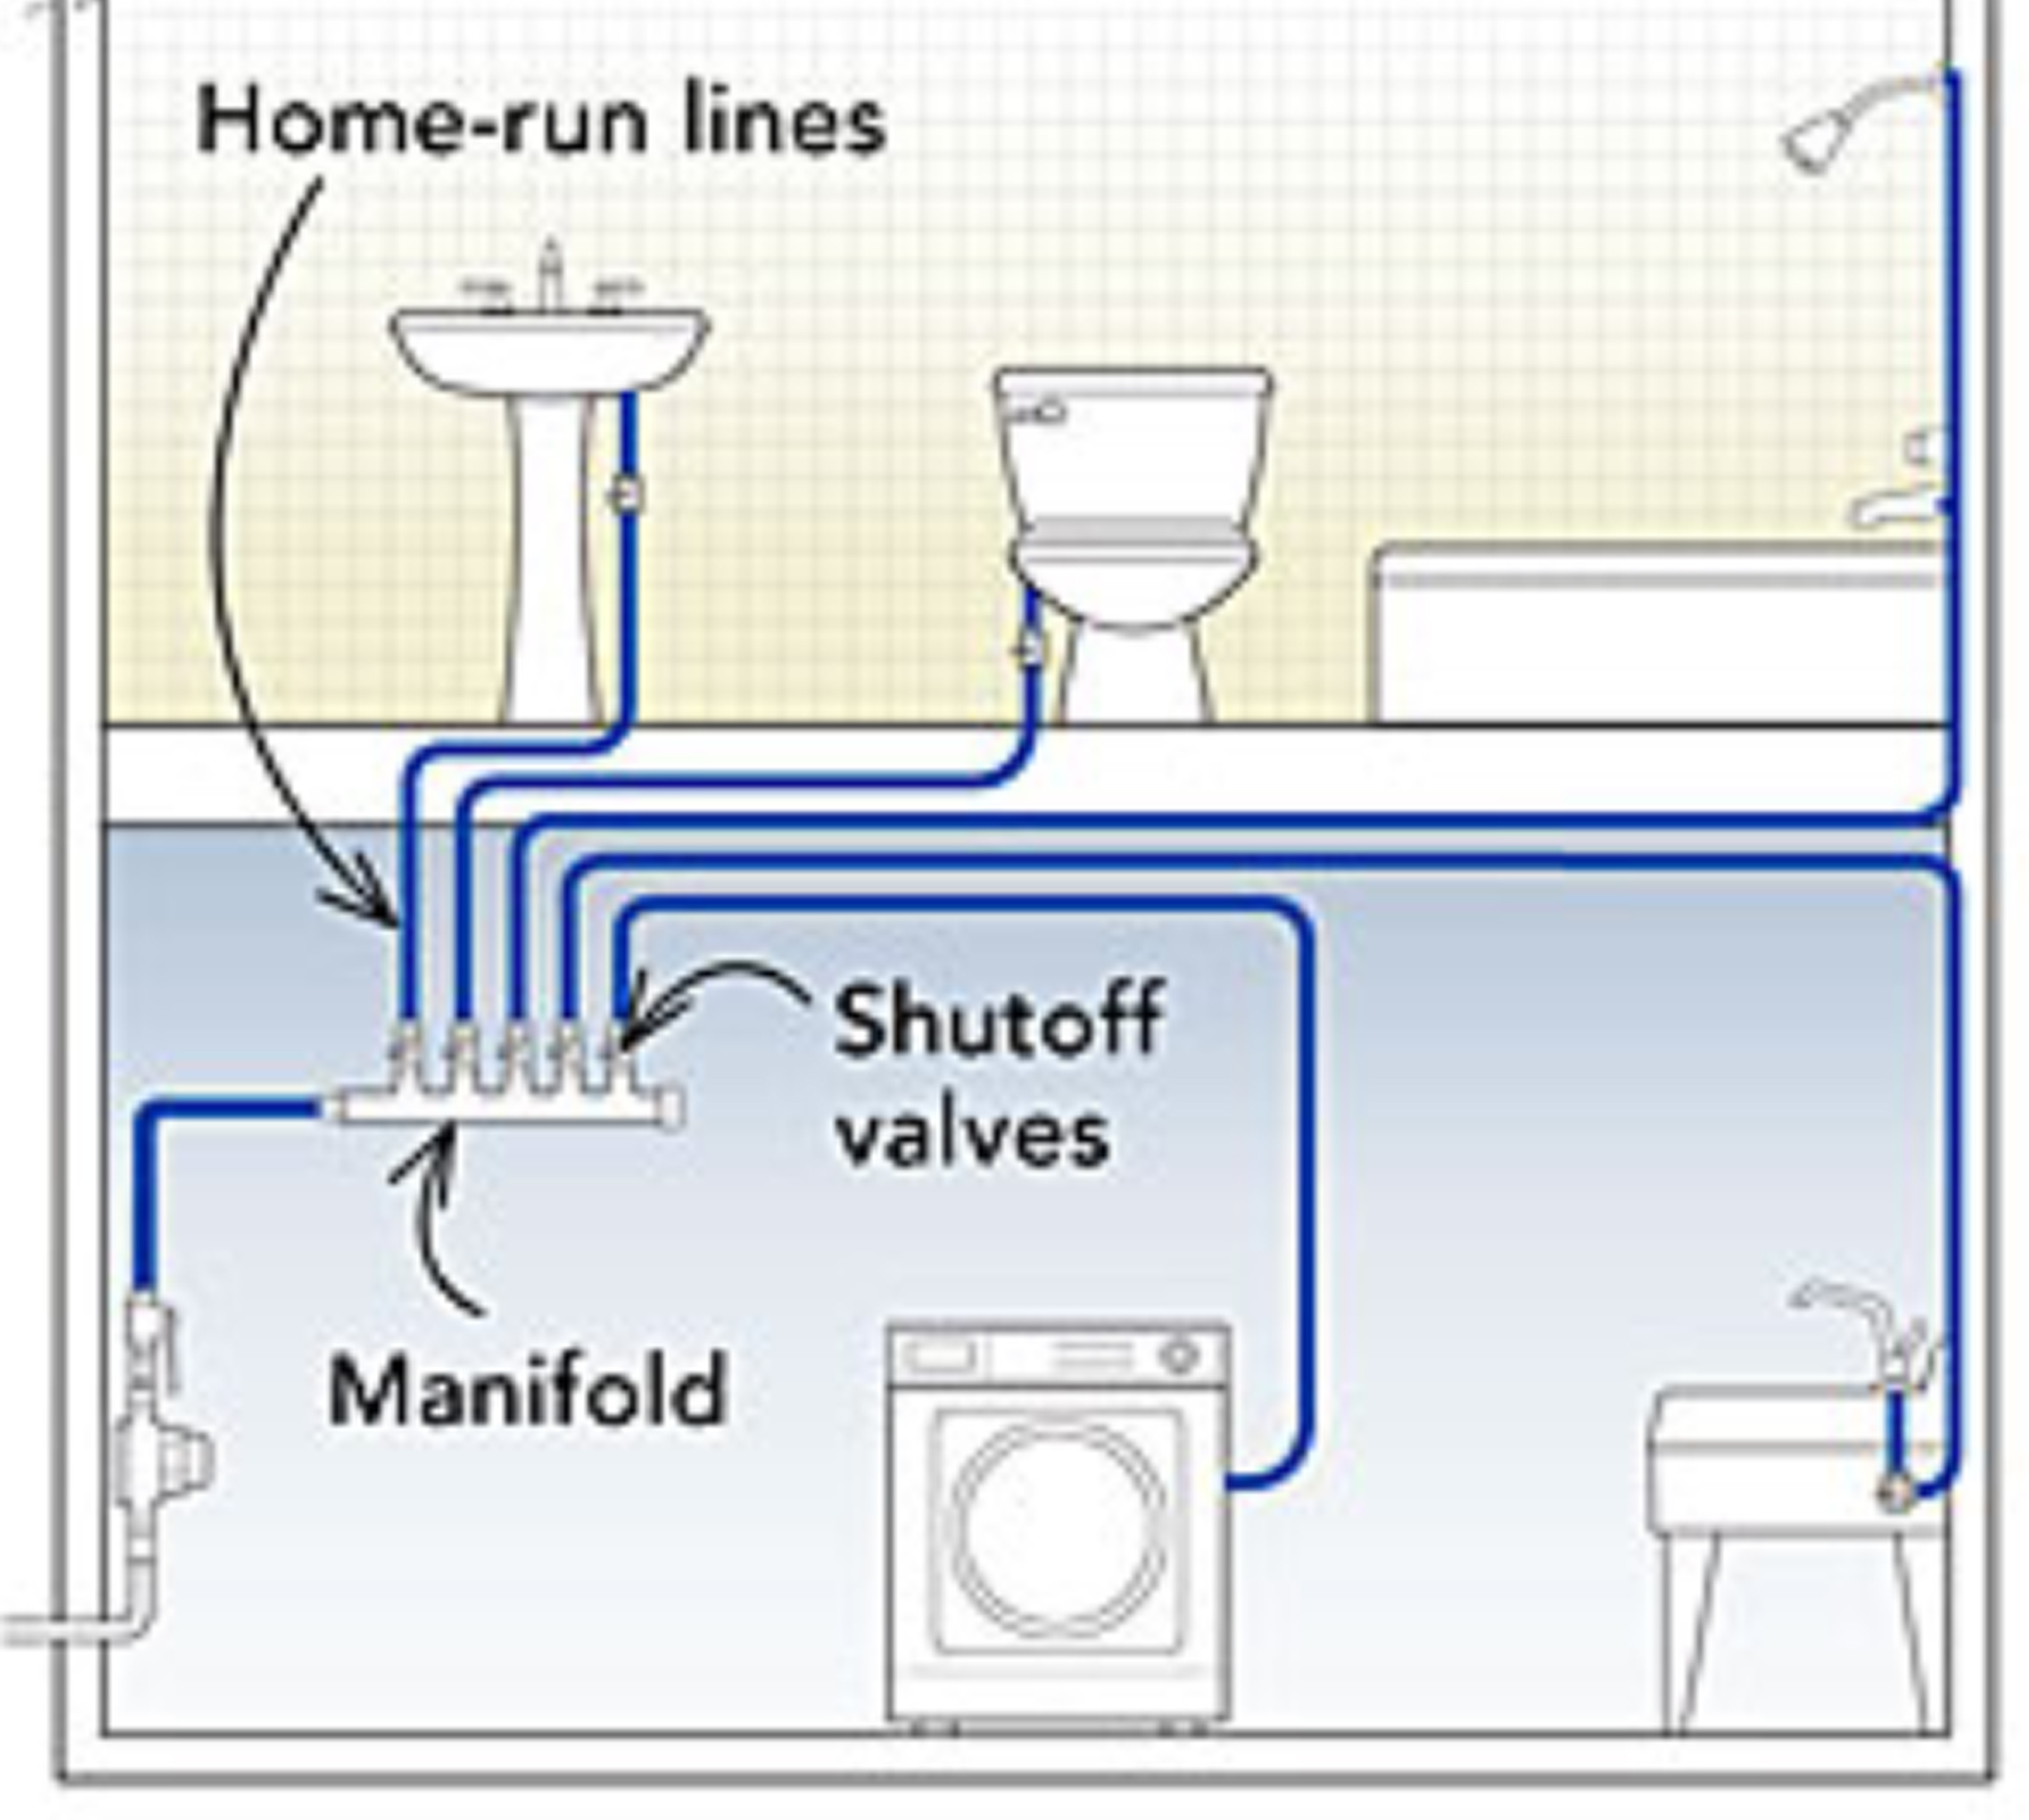 Pex plumbing system diagram house plumbing diagrams Home run architecture